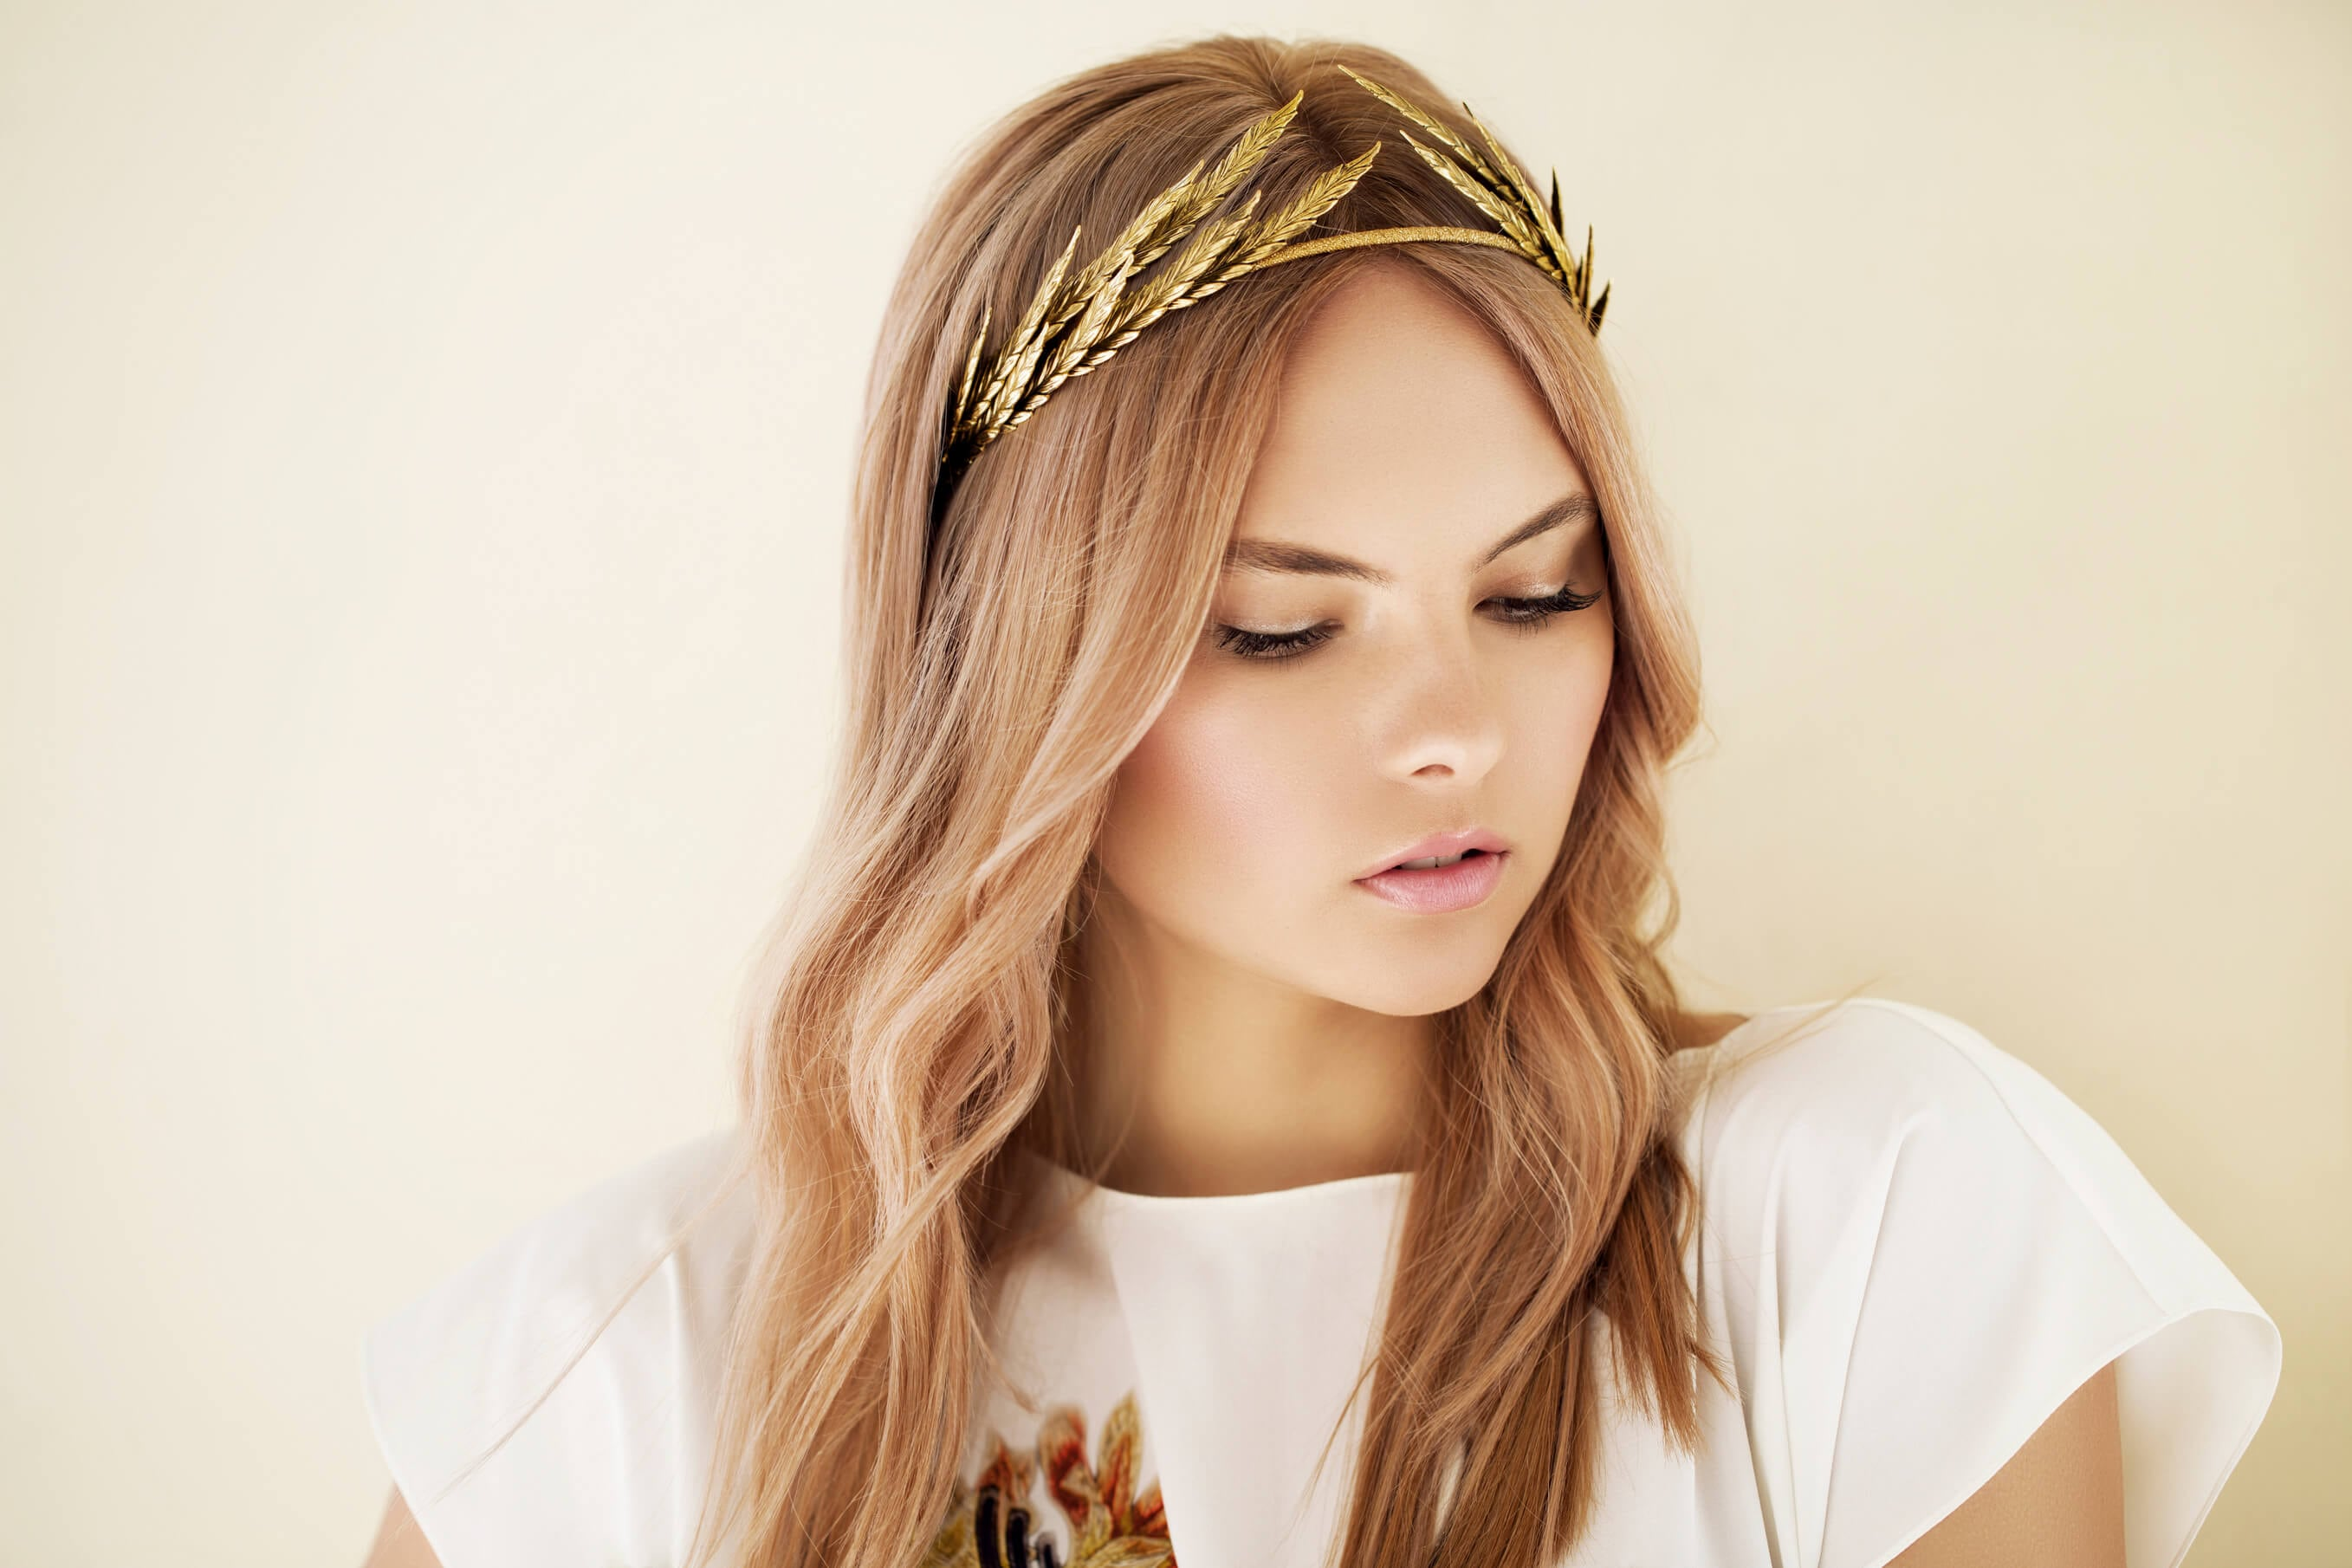 Metallic Accessories headband